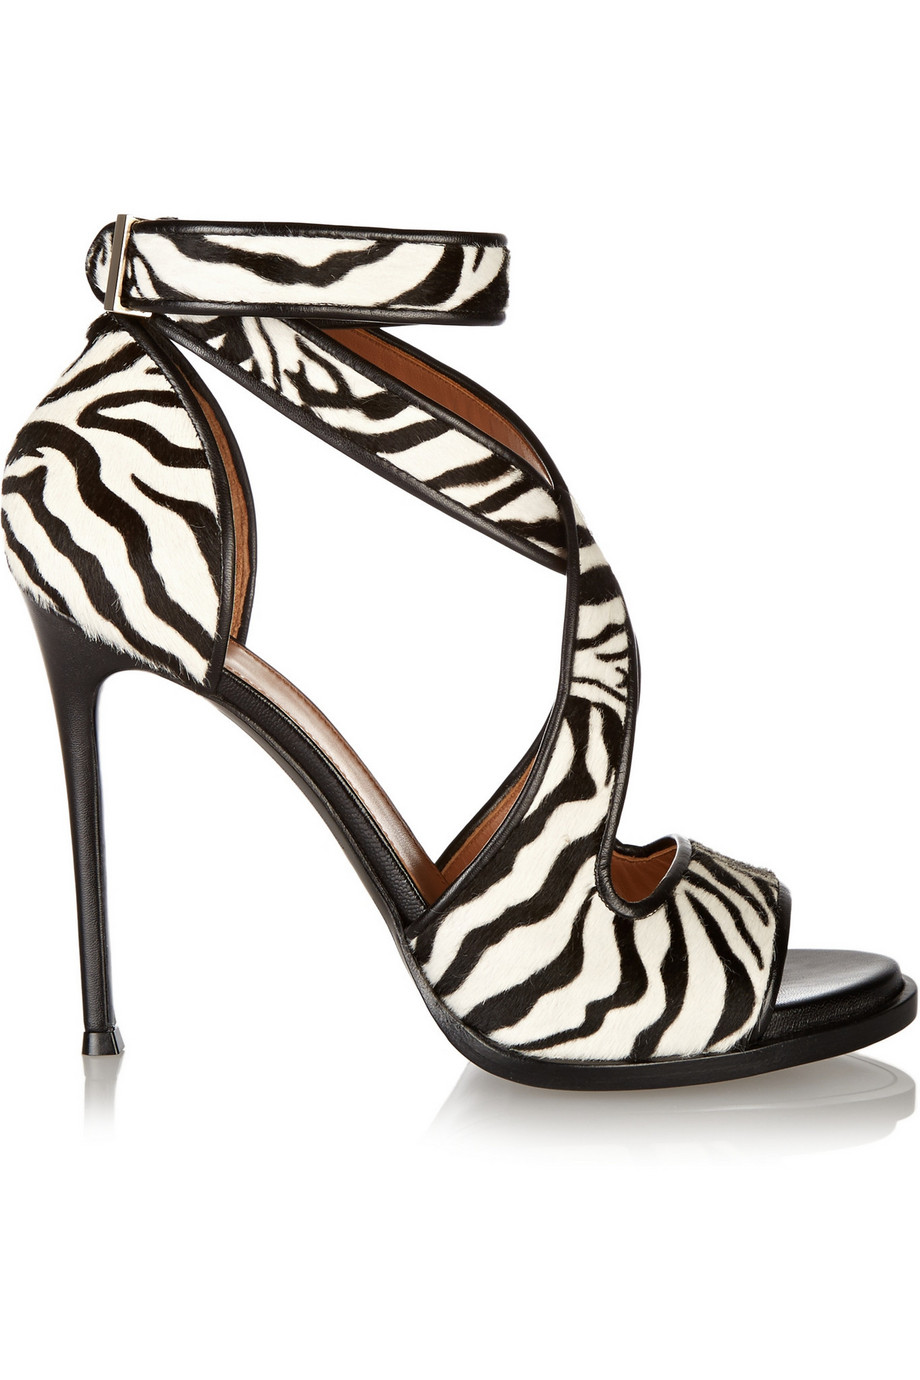 Givenchy Nilenia Sandals in Zebra-Print Calf Hair With Leather Trim, Zebra Print, Women's US Size: 6, Size: 36.5